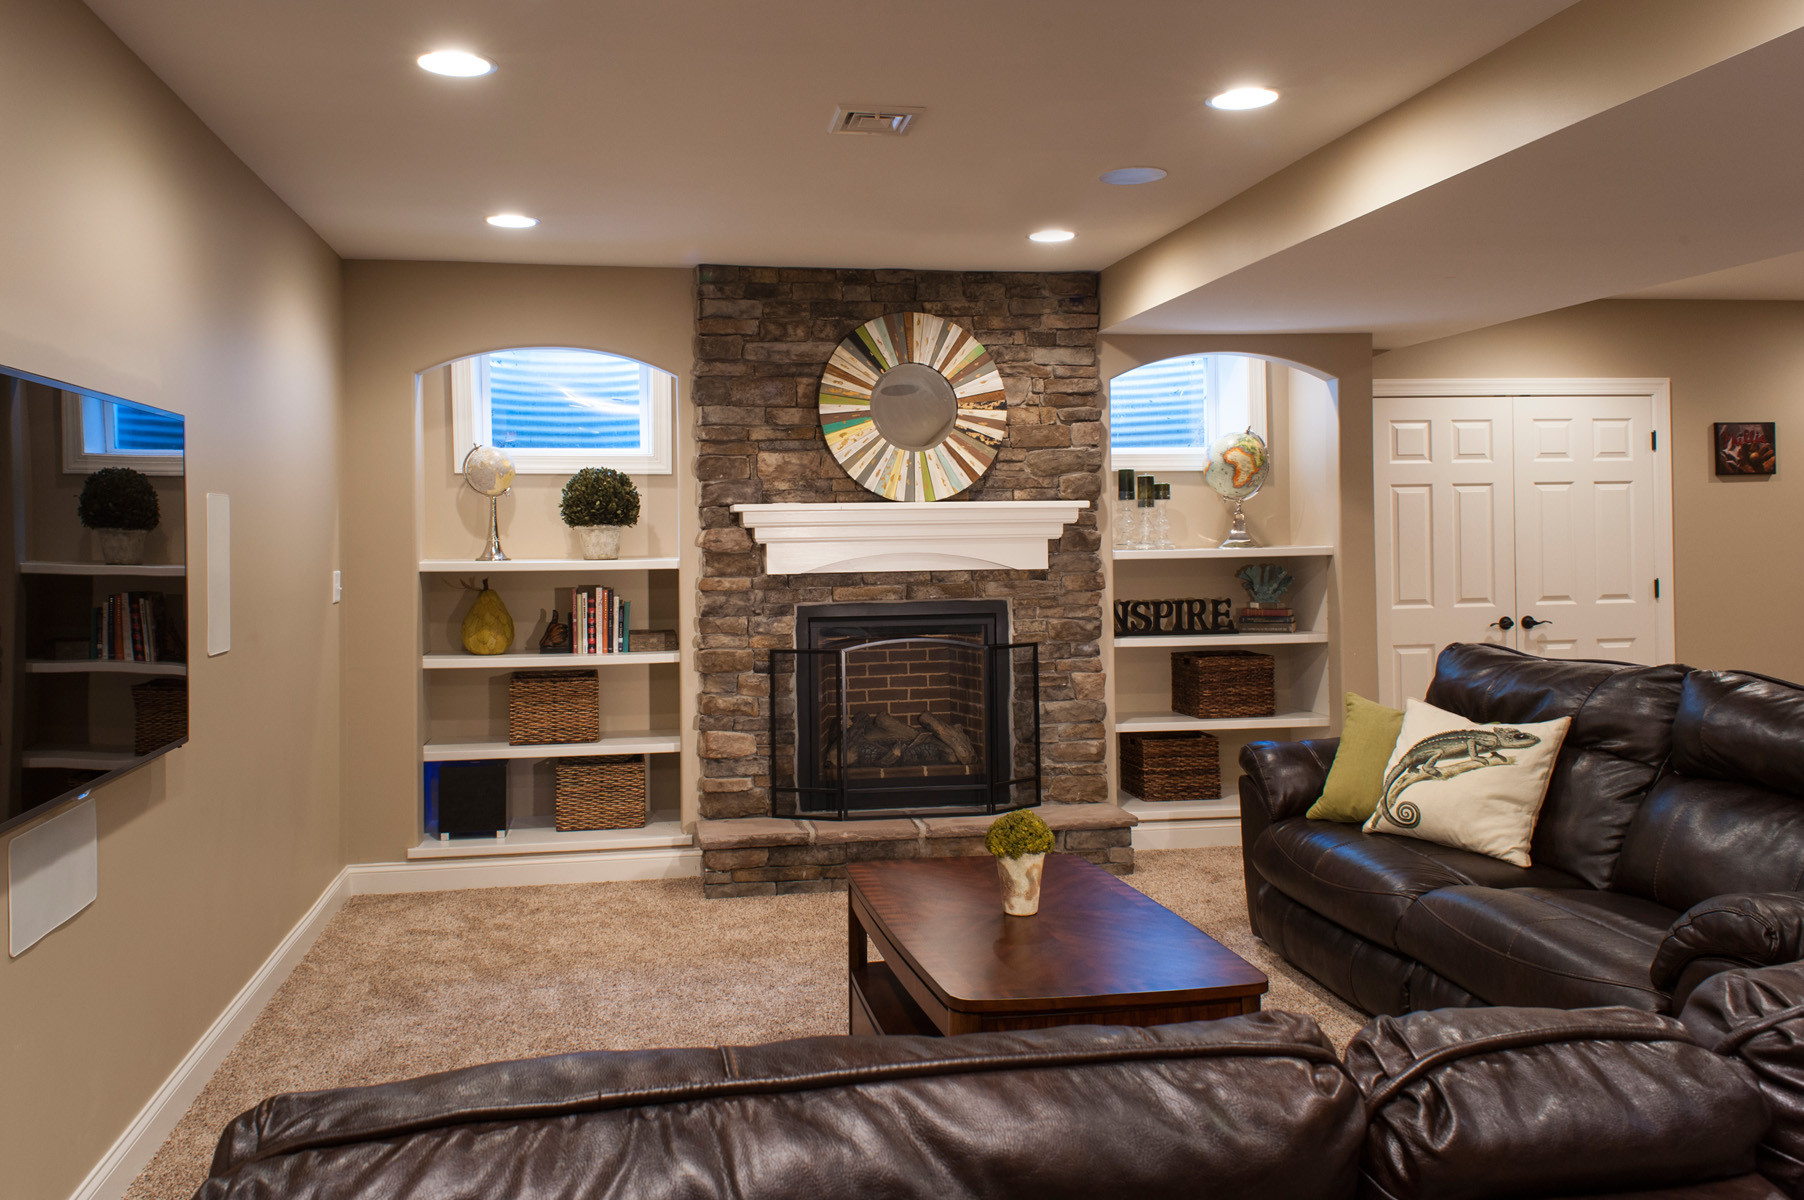 Best ideas about Great Basement Ideas . Save or Pin Basement Remodelling Ideas talentneeds Now.